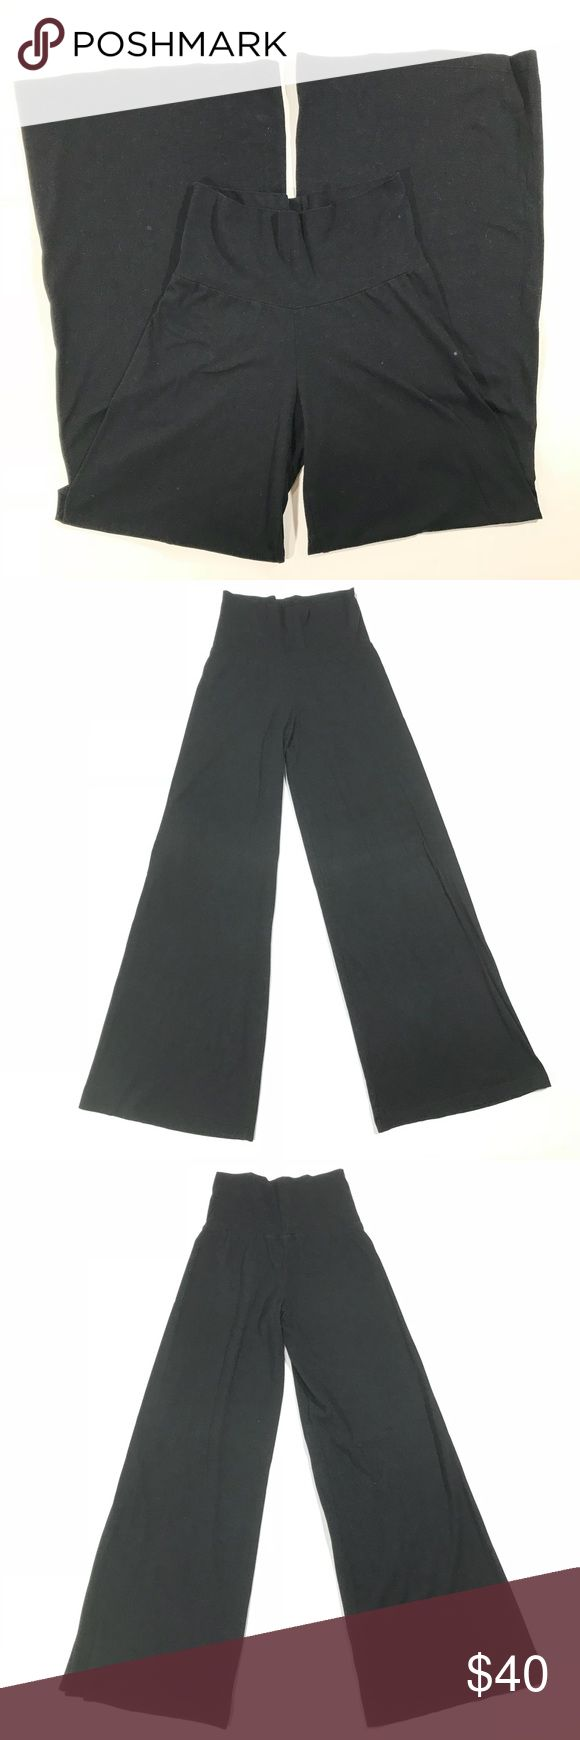 """Standard James Perse Fold Waist Wide Leg Yoga Pant Standard James Perse SZ 2 Black Solid Cotton Fold Hem Wide Leg Yoga Pants Womens  Measurements Approx (Lying Flat) Labeled: 2 Waist: 13"""" Rise: 6.5"""" (Folded); 11.5"""" (Unfolded)  Inseam: 33""""  Condition: Gently preowned.    If you have any questions, don't hesitate to contact me! James Perse Pants Wide Leg"""